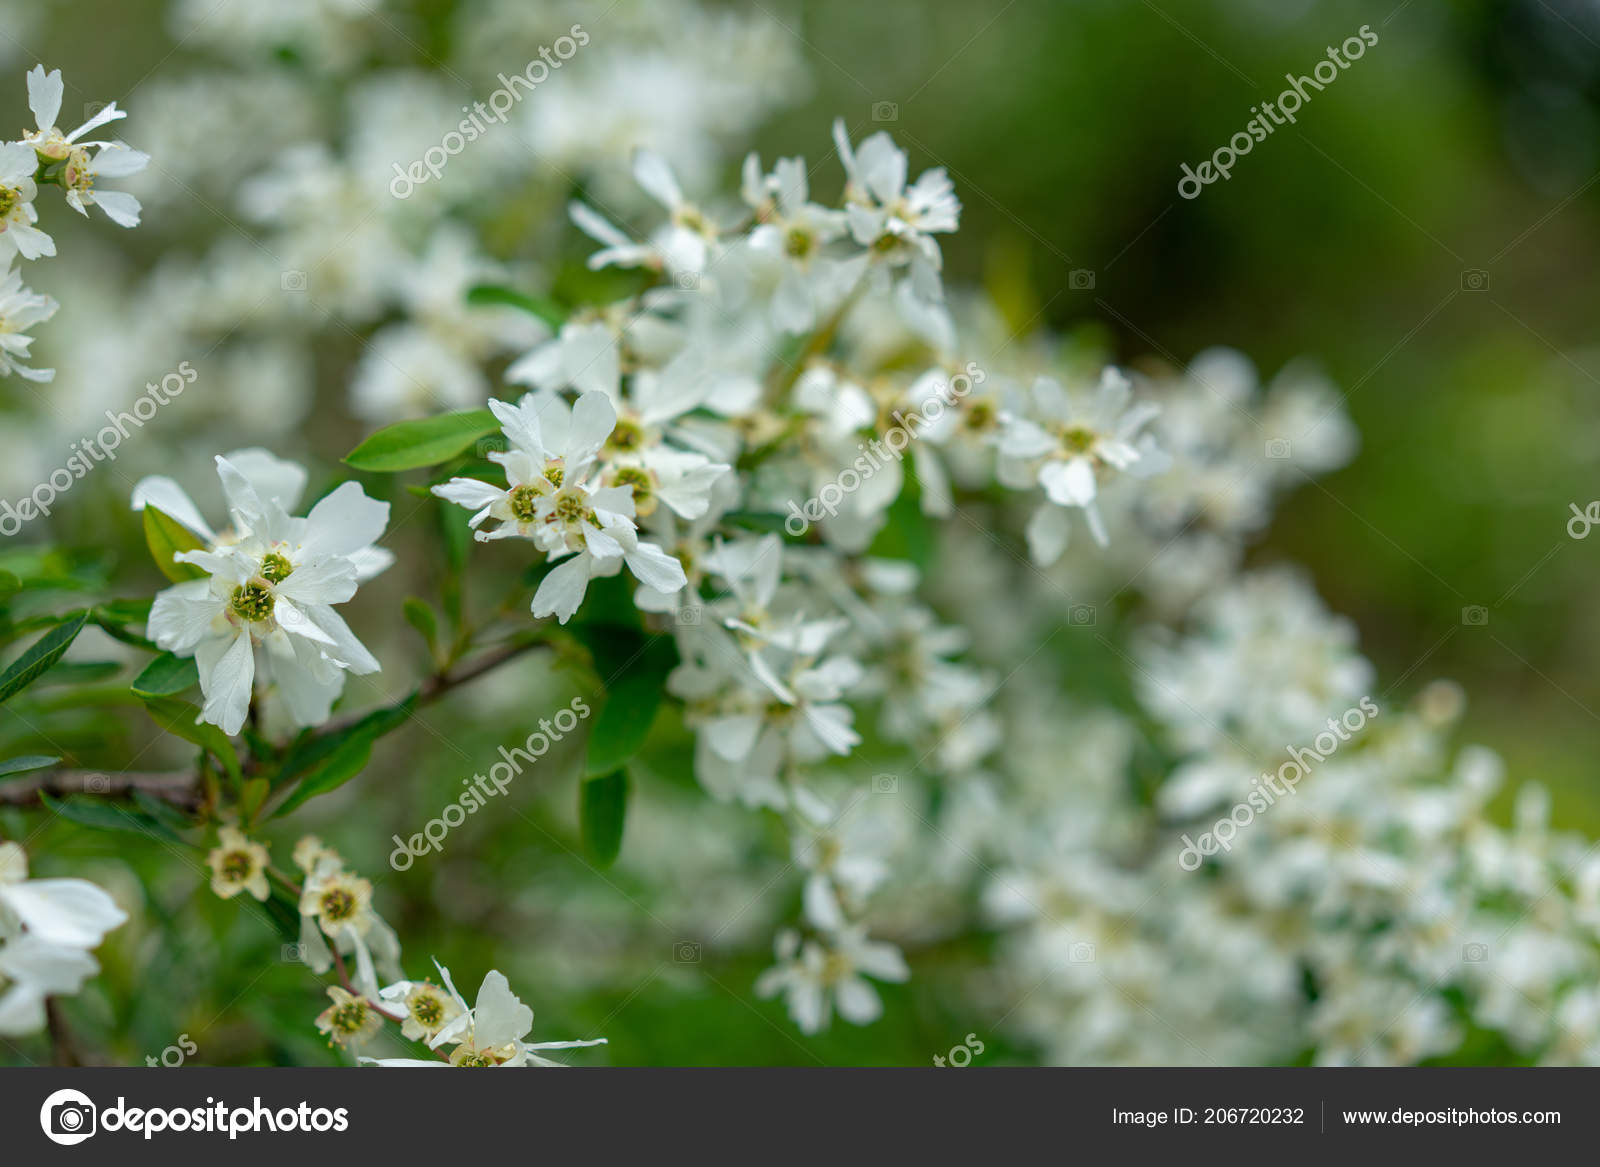 Blooming Plant With White Flower Buds Exochorda Korolkowii Stock